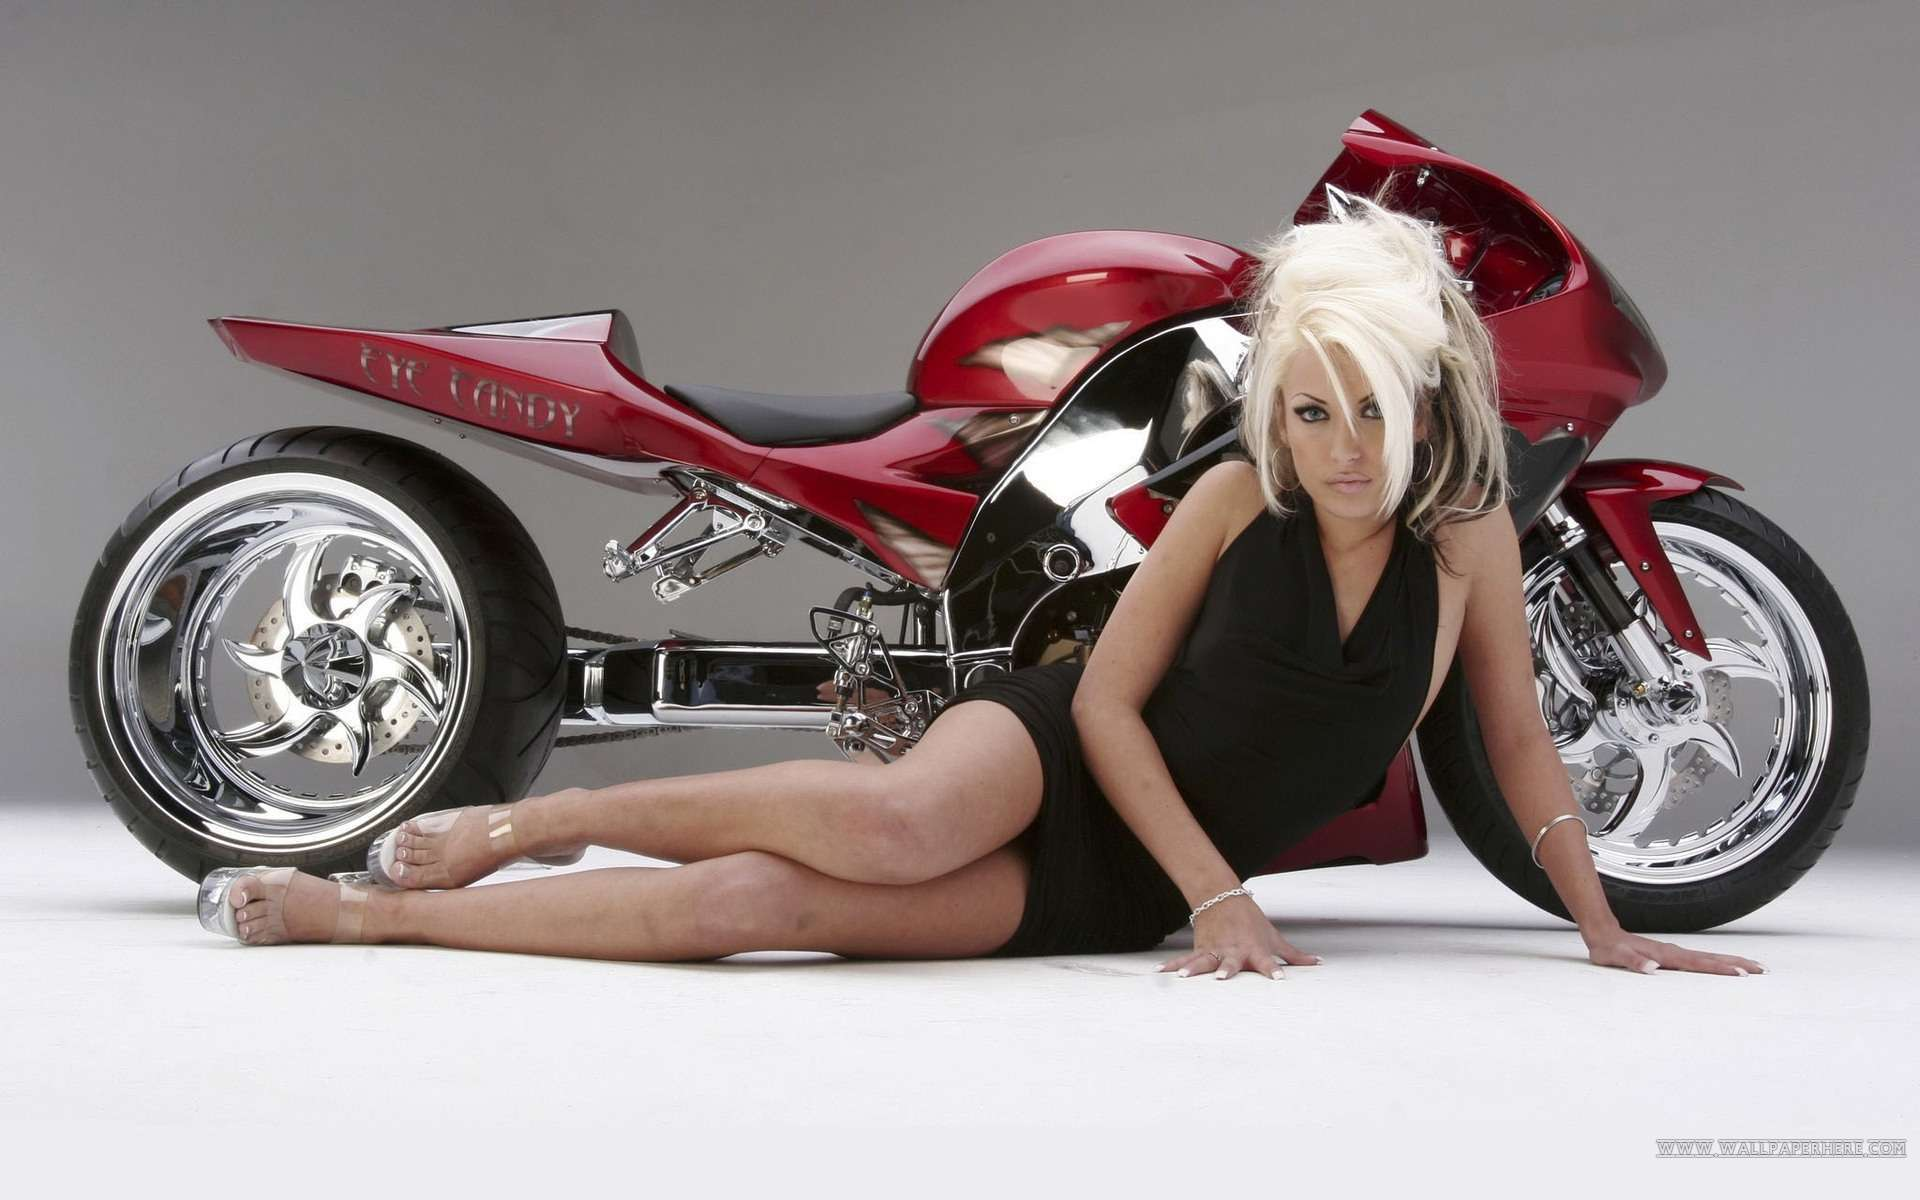 Hot Girls And Motorcycle Wallpaper Wallpapers Hd Car Wallpapers 1920x1200